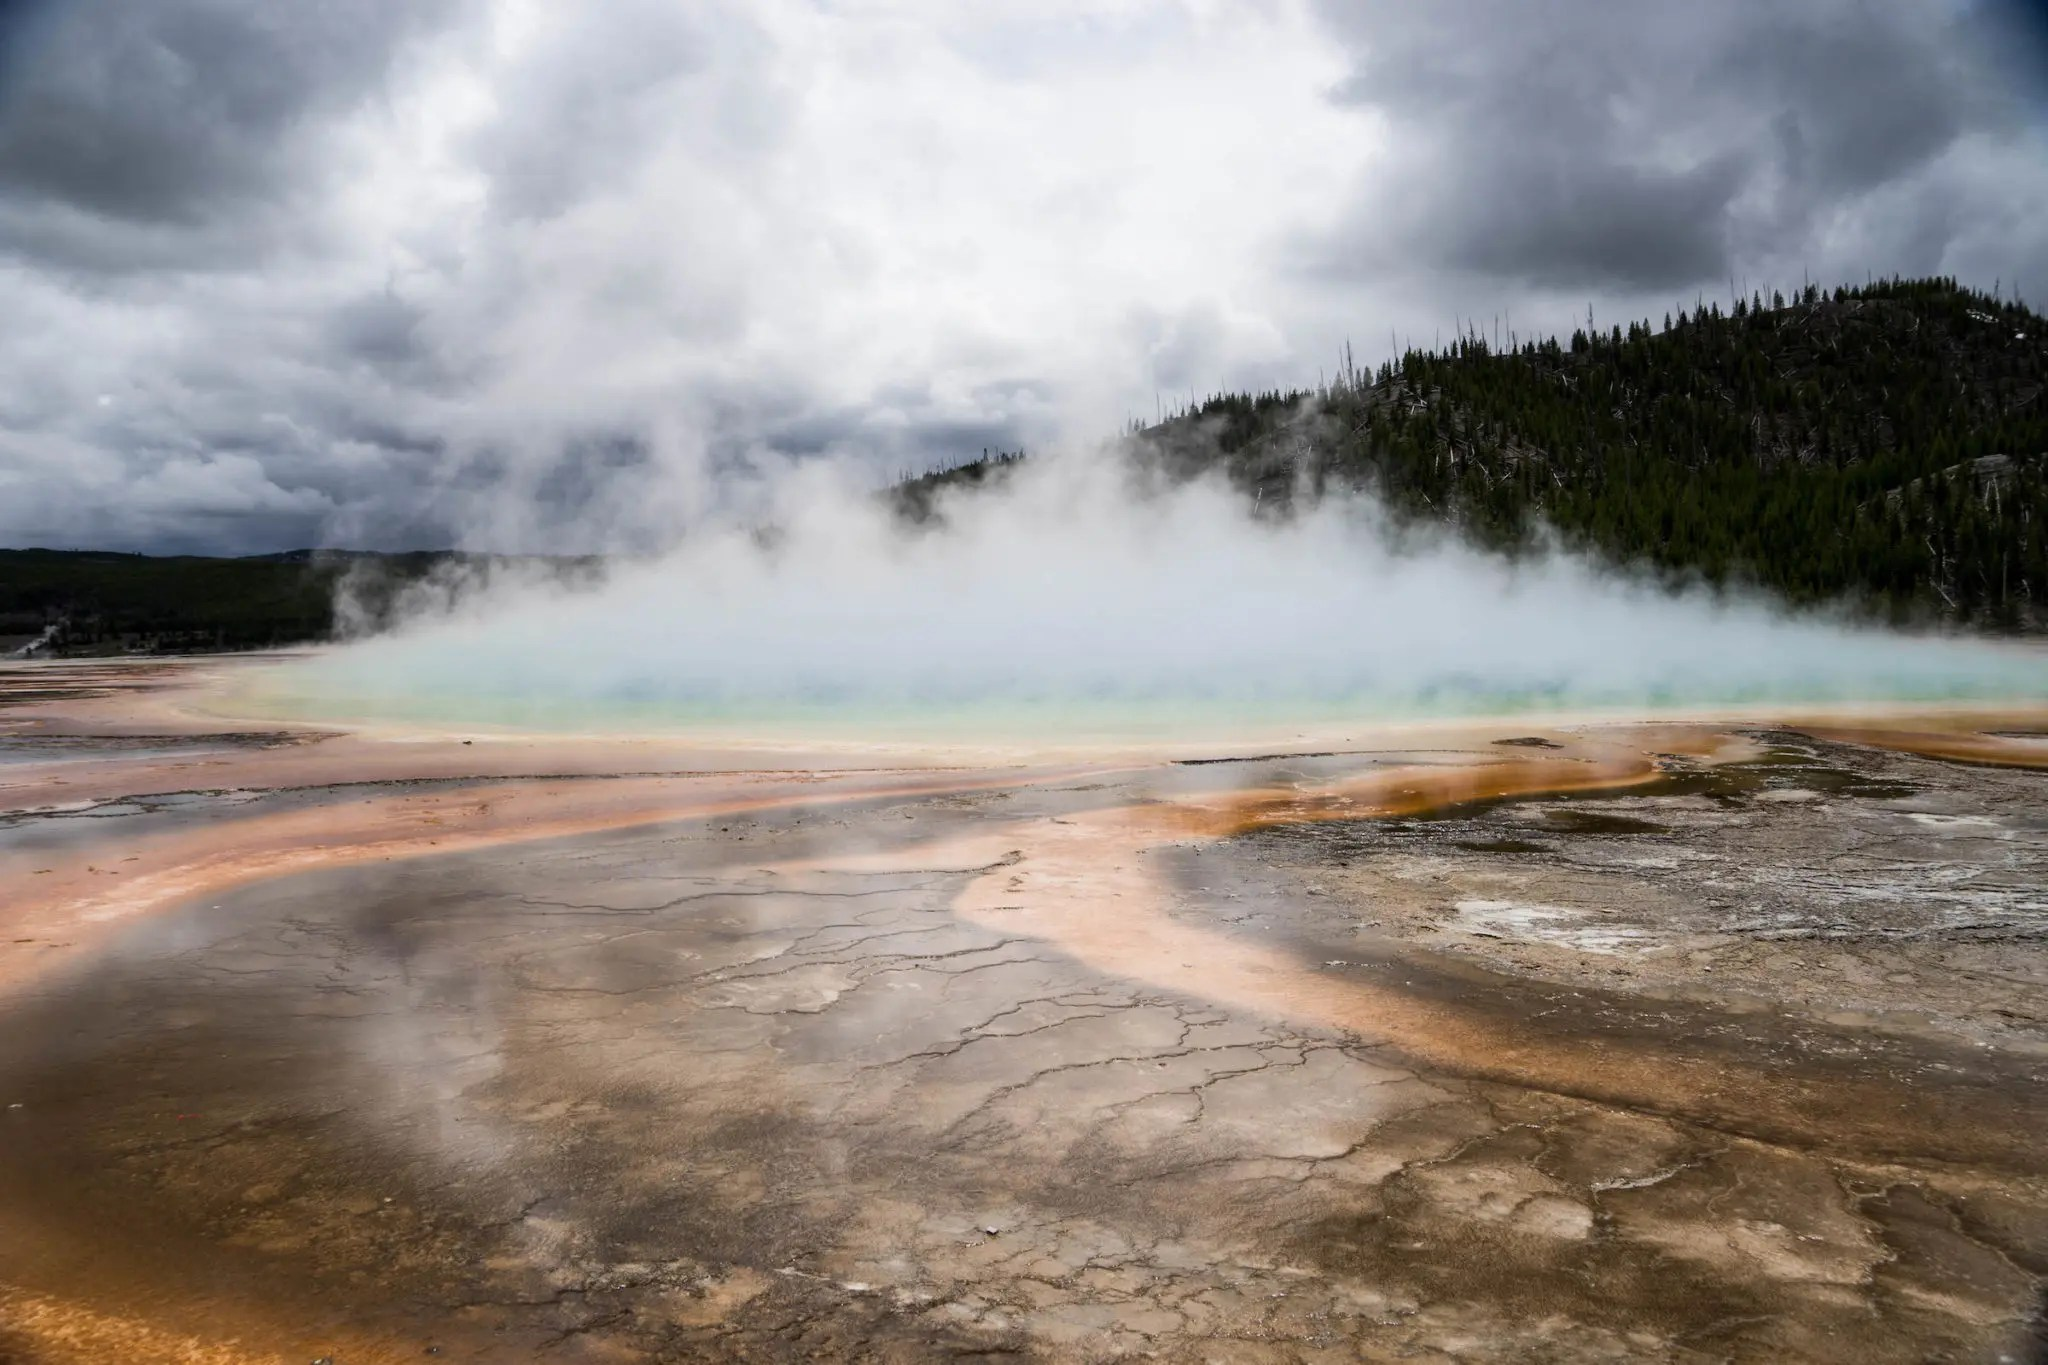 The geysers are truly beautiful and eerie things.